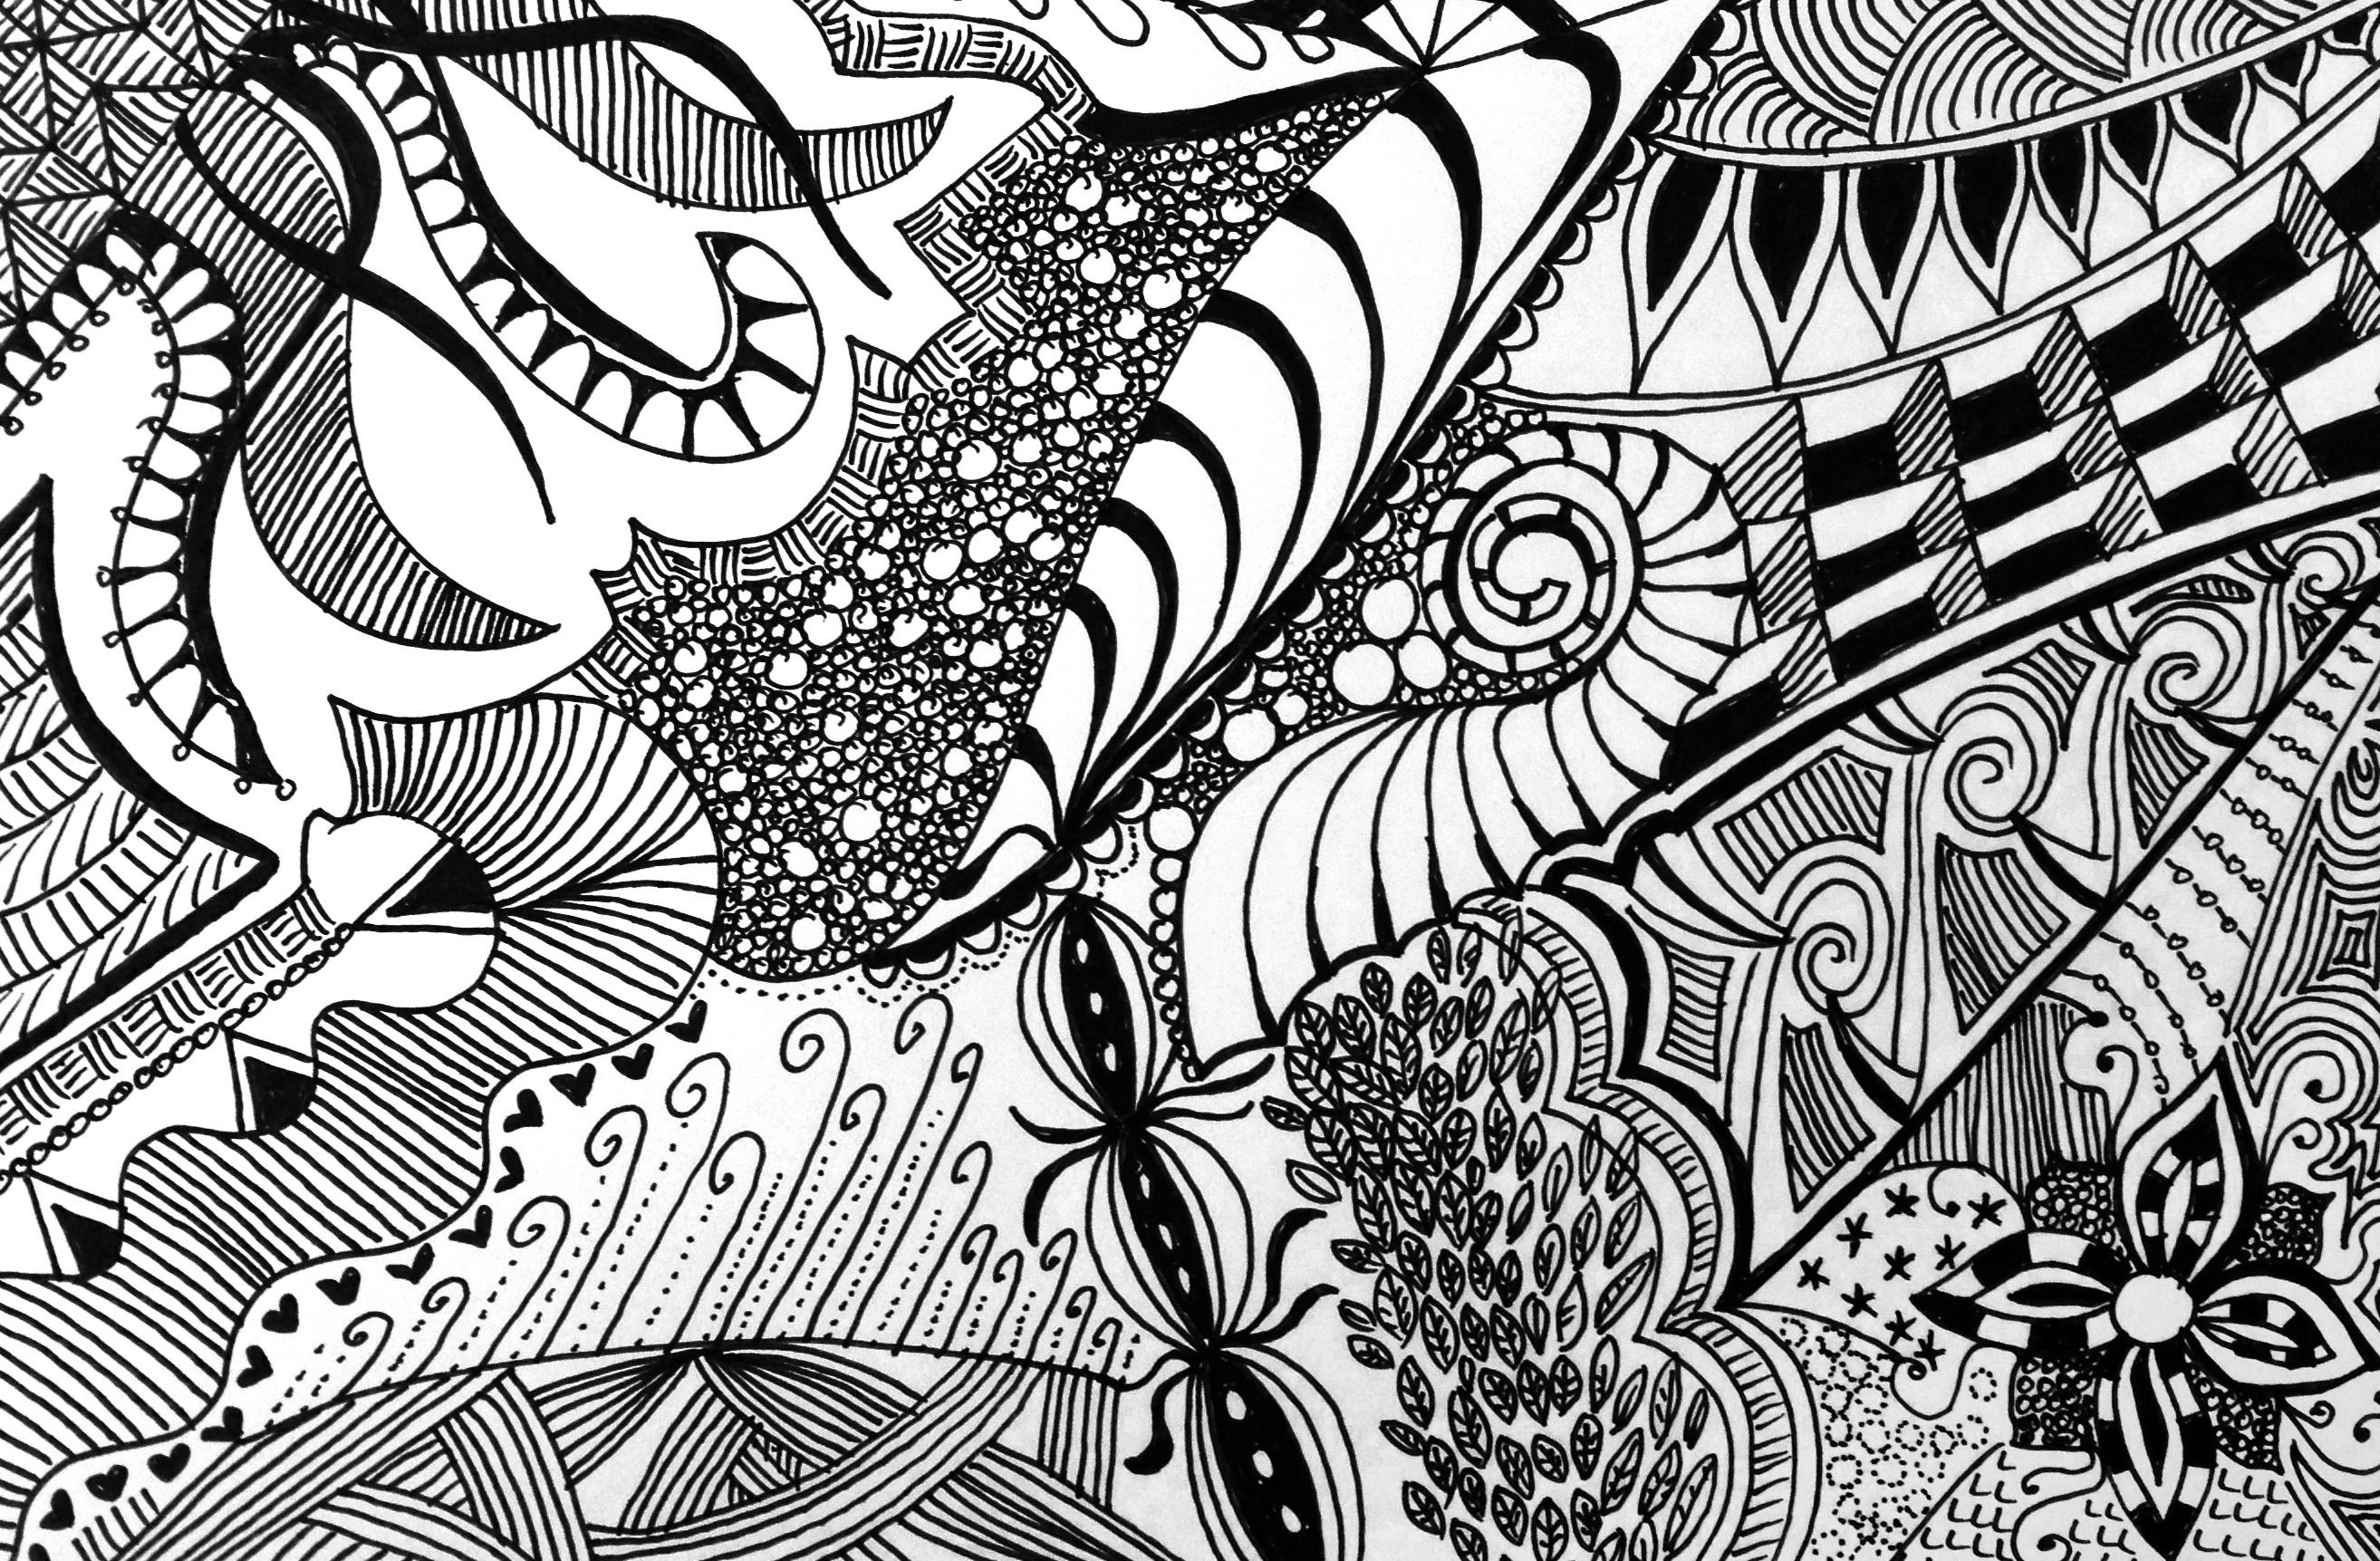 abstract zentangle drawing floral zentangle g6 art print abstract abstract zentangle